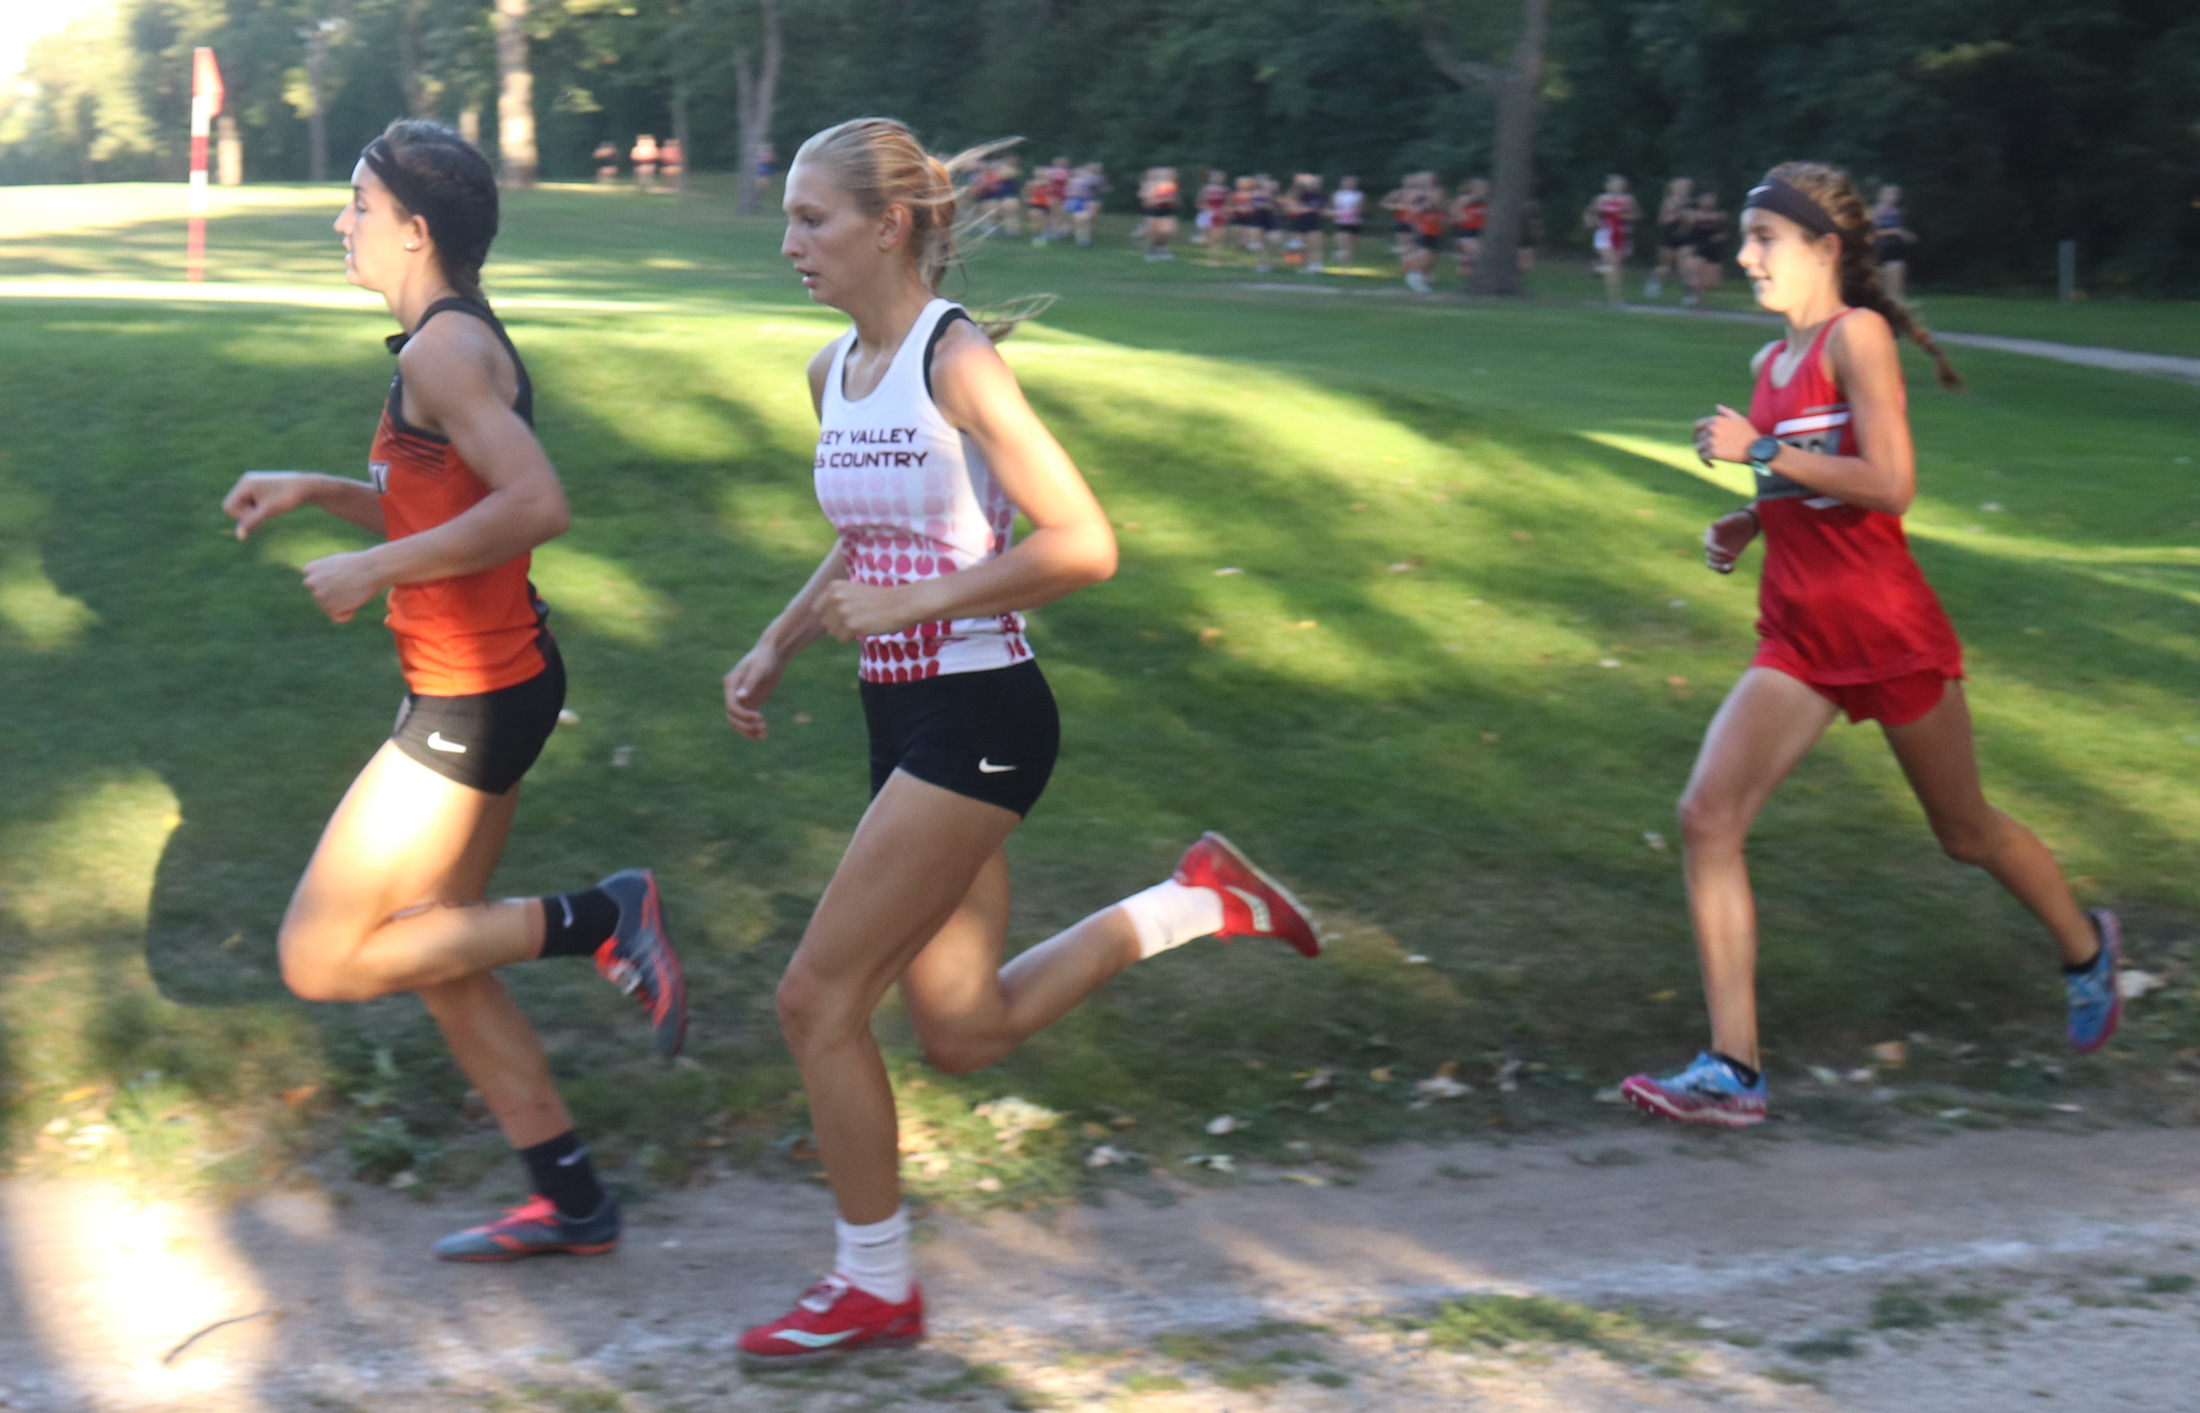 Comet Kiki Connell dominates girls 'fast' race at Trent Smith Invitational